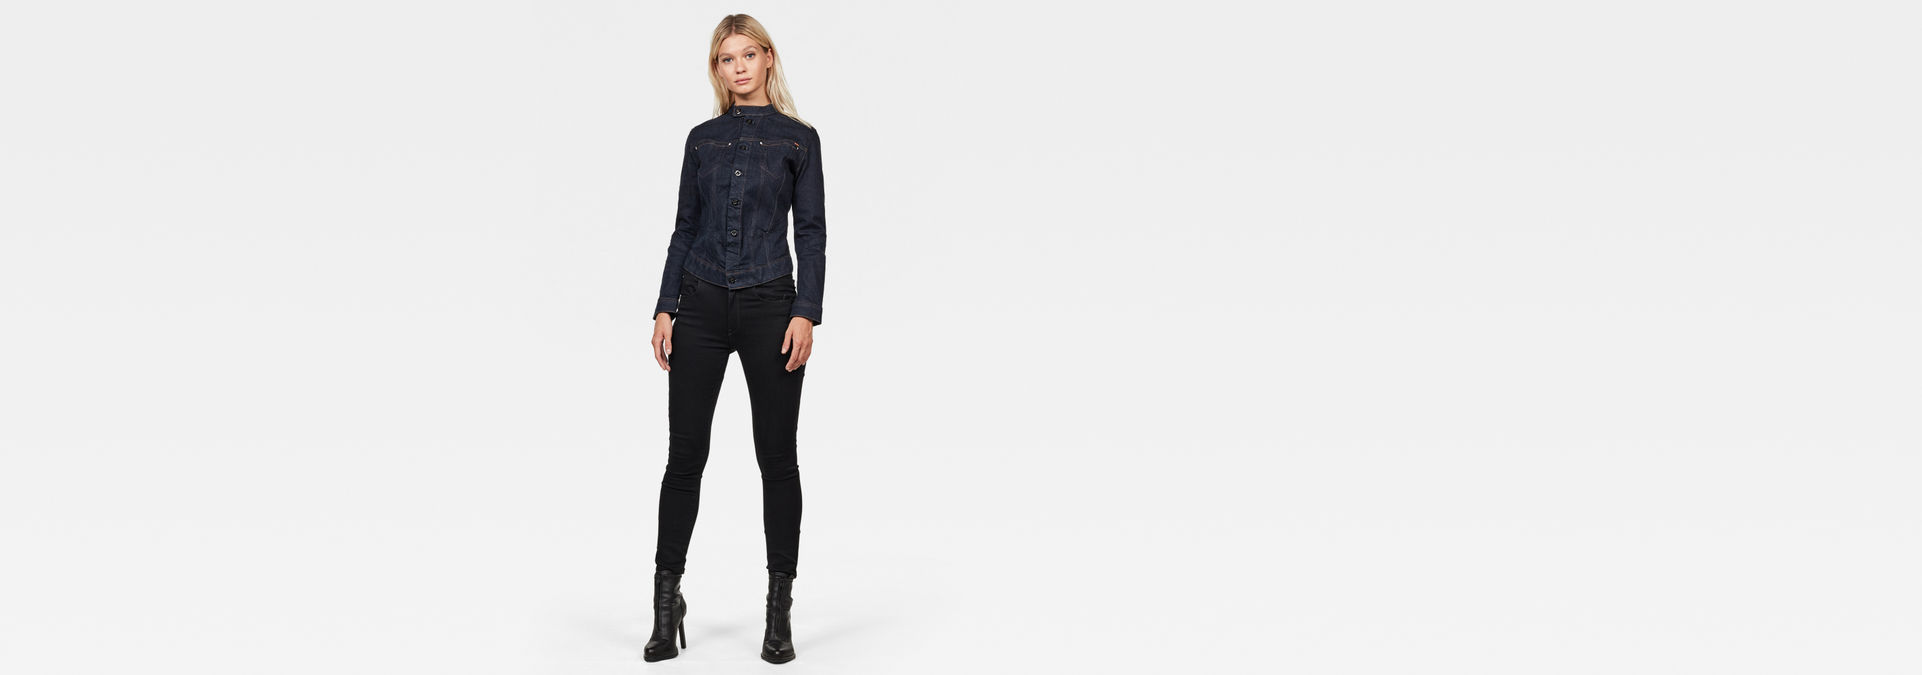 Veste Corbel Slim | Rinsed | Femmes | G Star RAW®